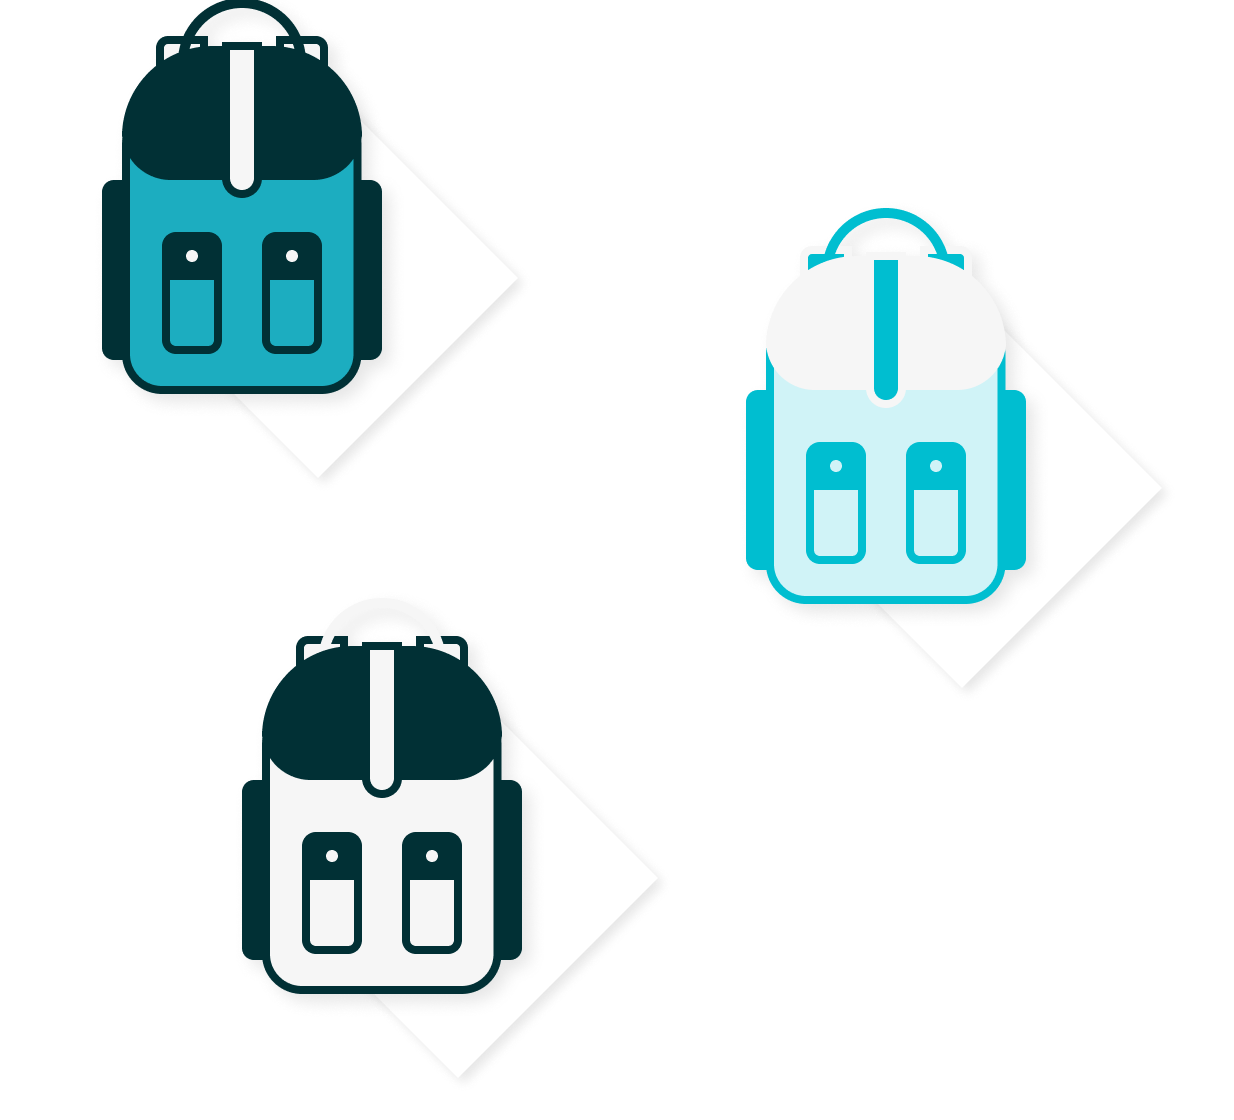 illustration representing product variations and kits